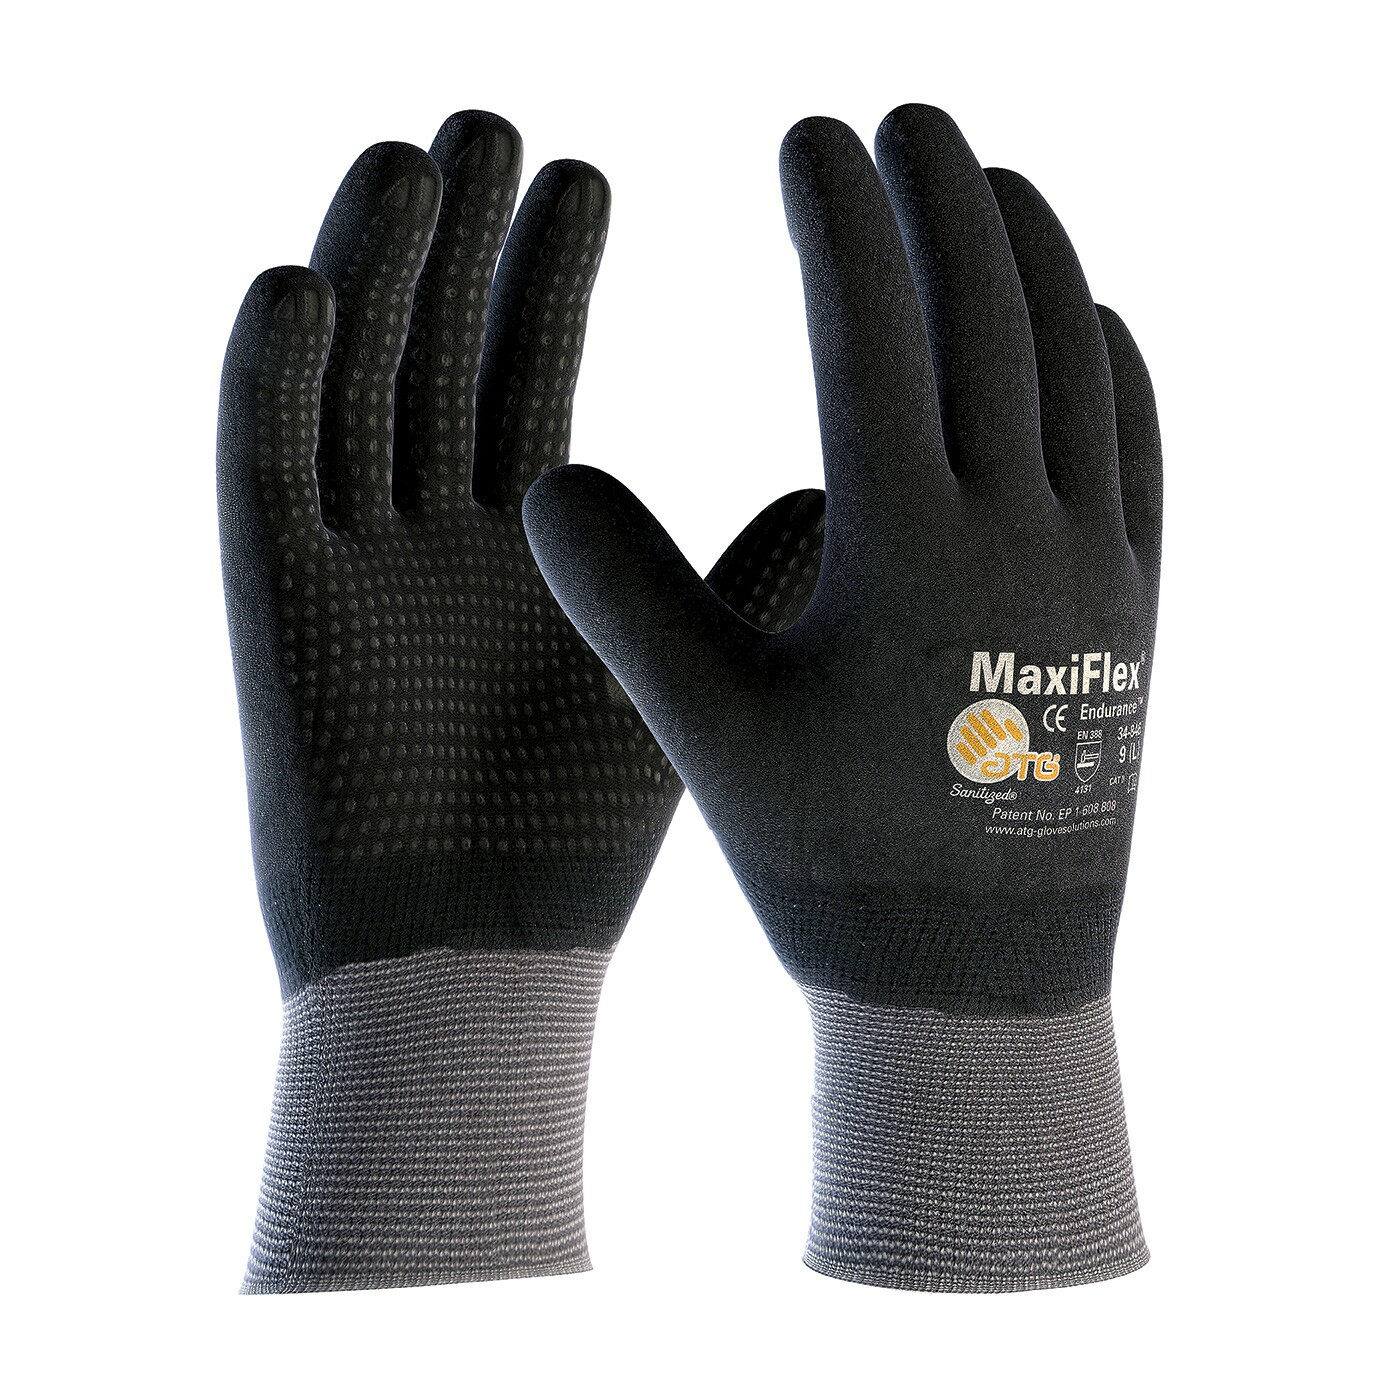 Atg Maxiflex Endurance Full Hand Coated Gloves Coated